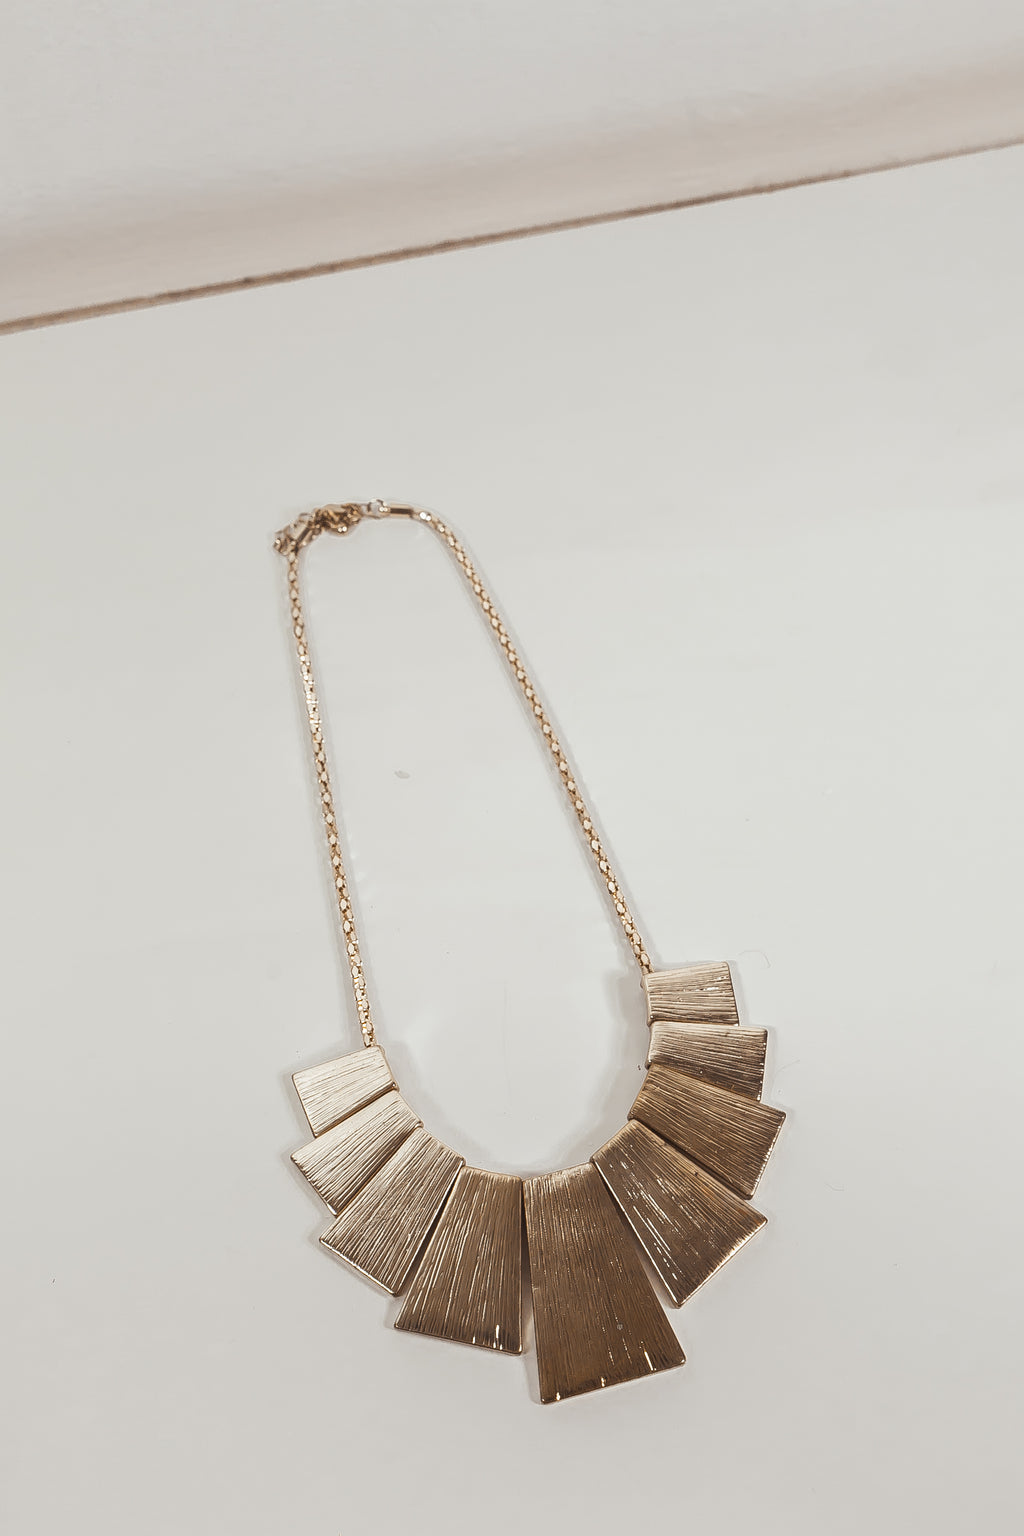 Tut Egyptian Plated Pndt Necklace